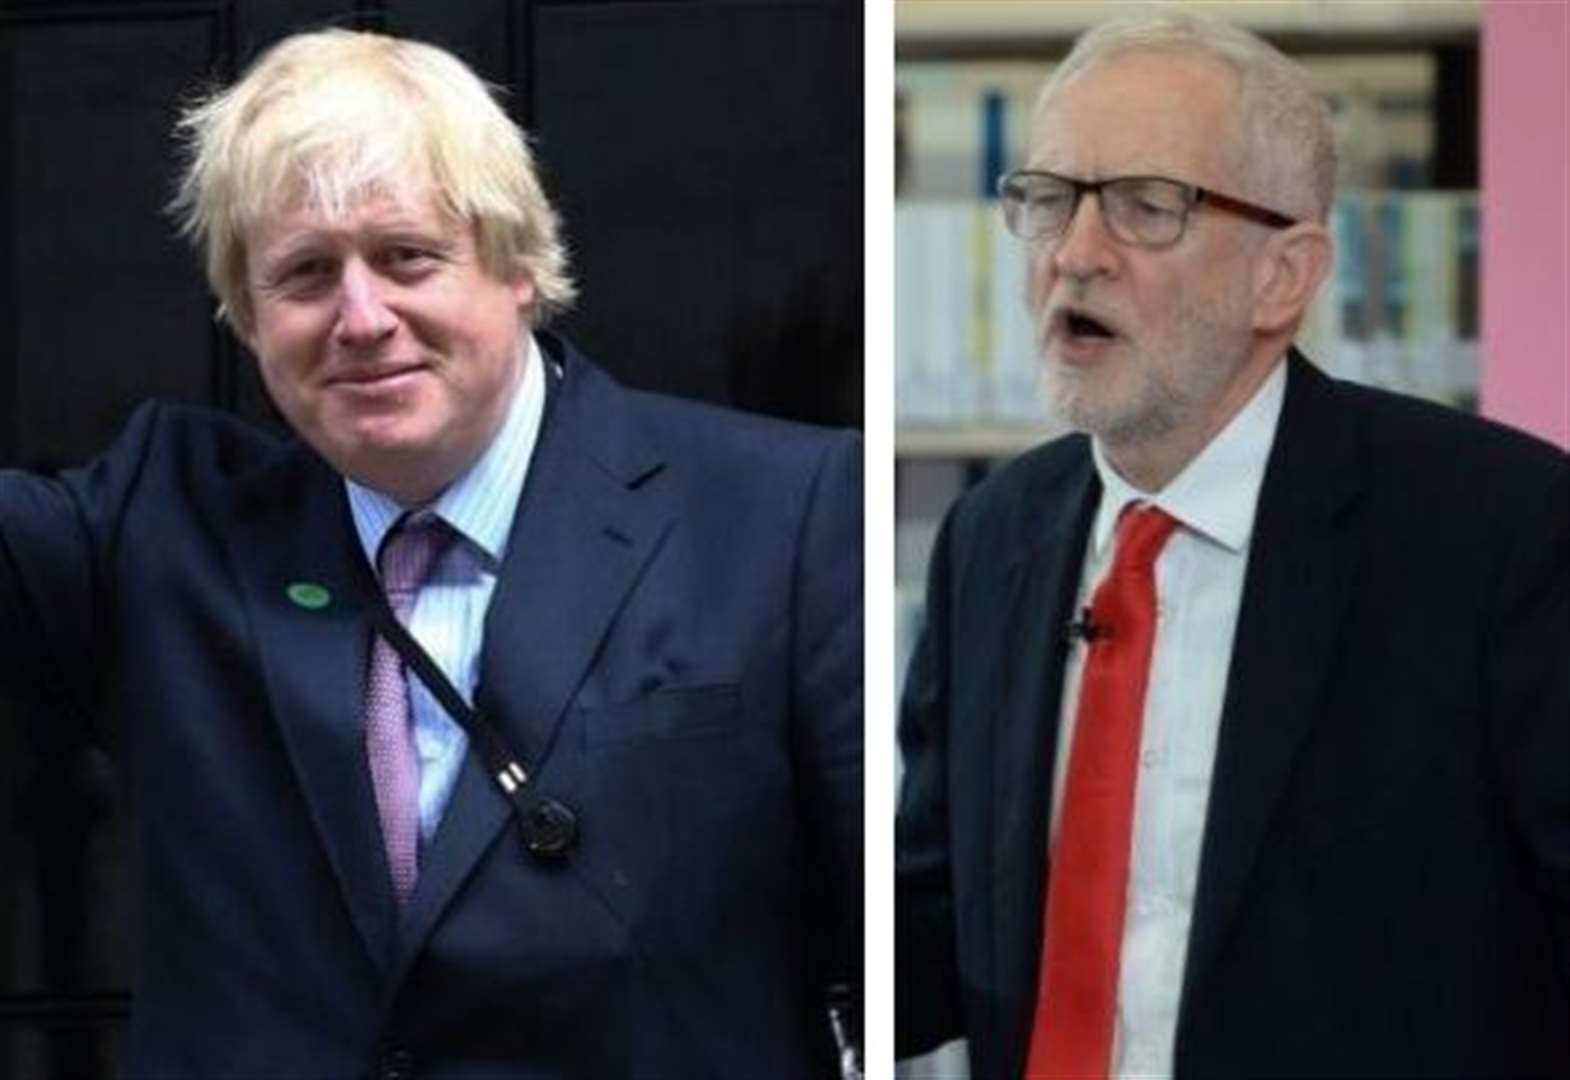 PM and Corbyn to go head-to-head in Kent